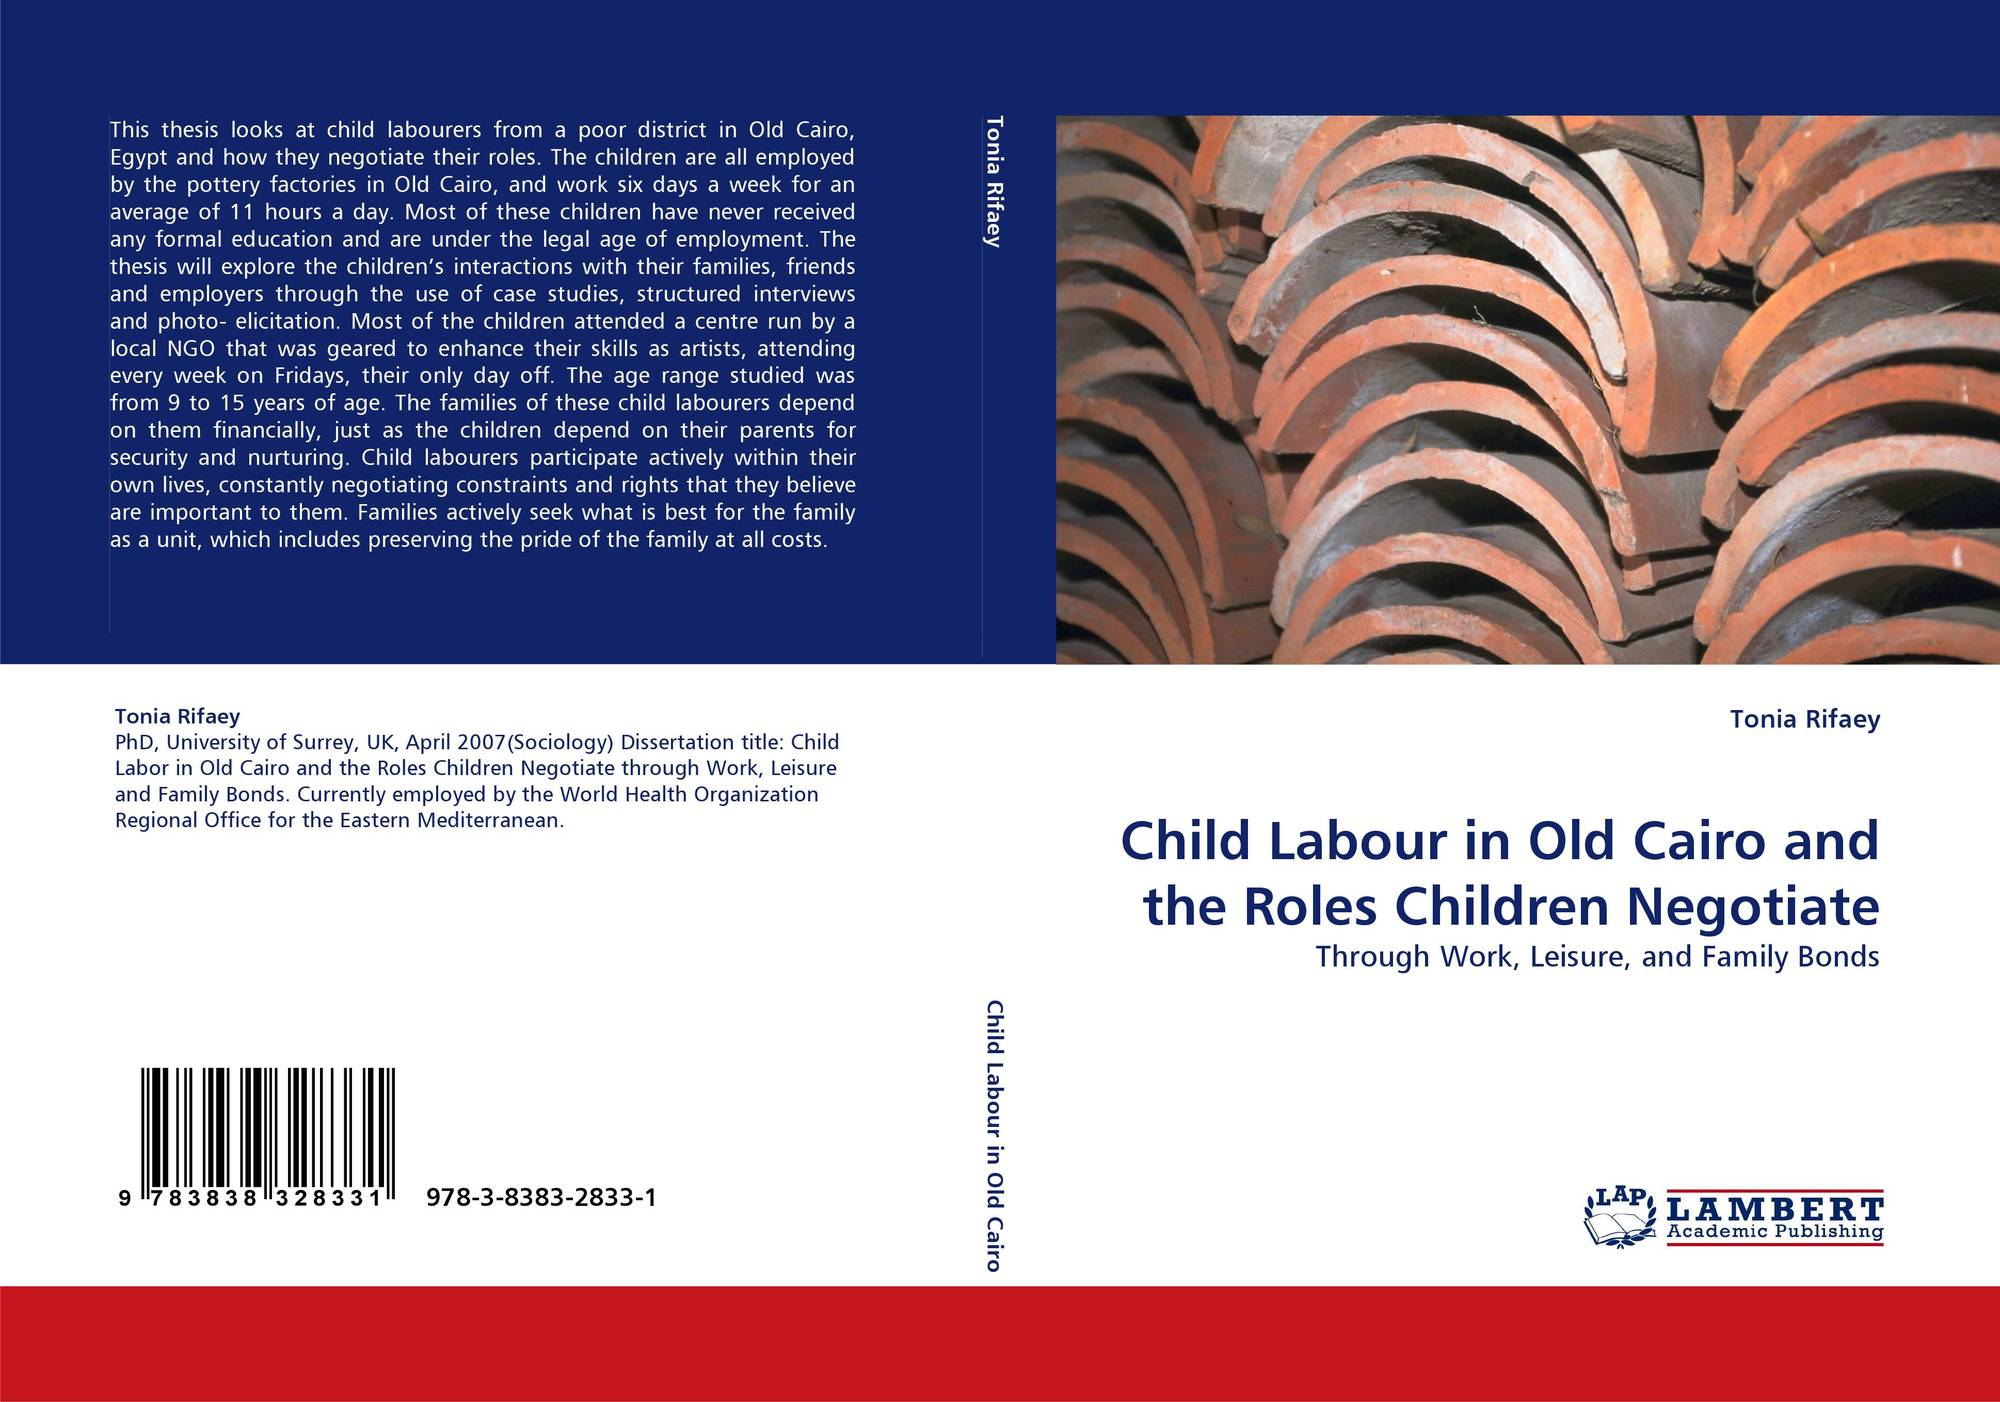 phd thesis on child labour Help, what is a good thesis statement for child labor hi, i'm stumped with coming up with a thesis statement for child labor i'm writing a research paper on the negativity of child.